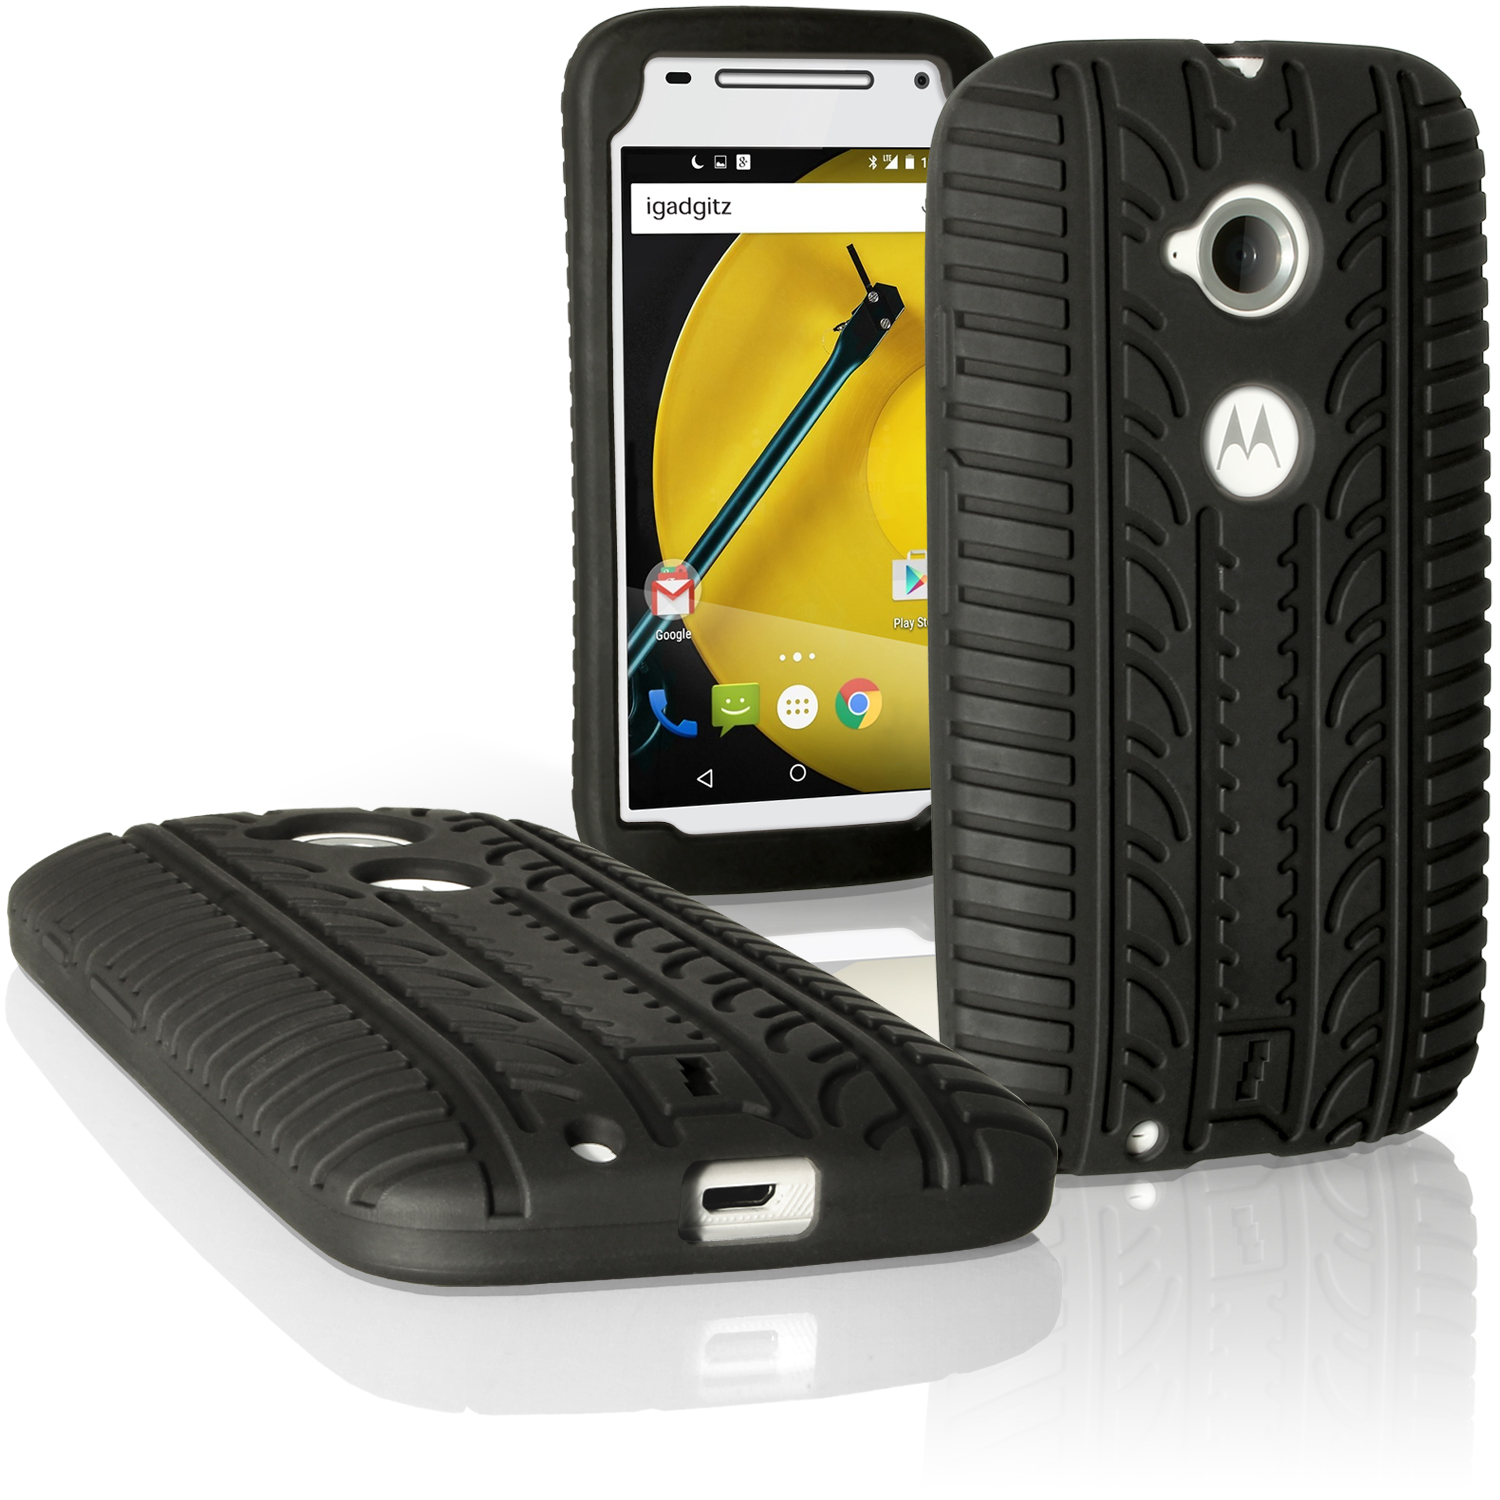 iGadgitz Black Tyre Tread Silicone Rubber Gel Skin Case Cover for Motorola Moto E 2 Generation XT1524 + Screen Protector